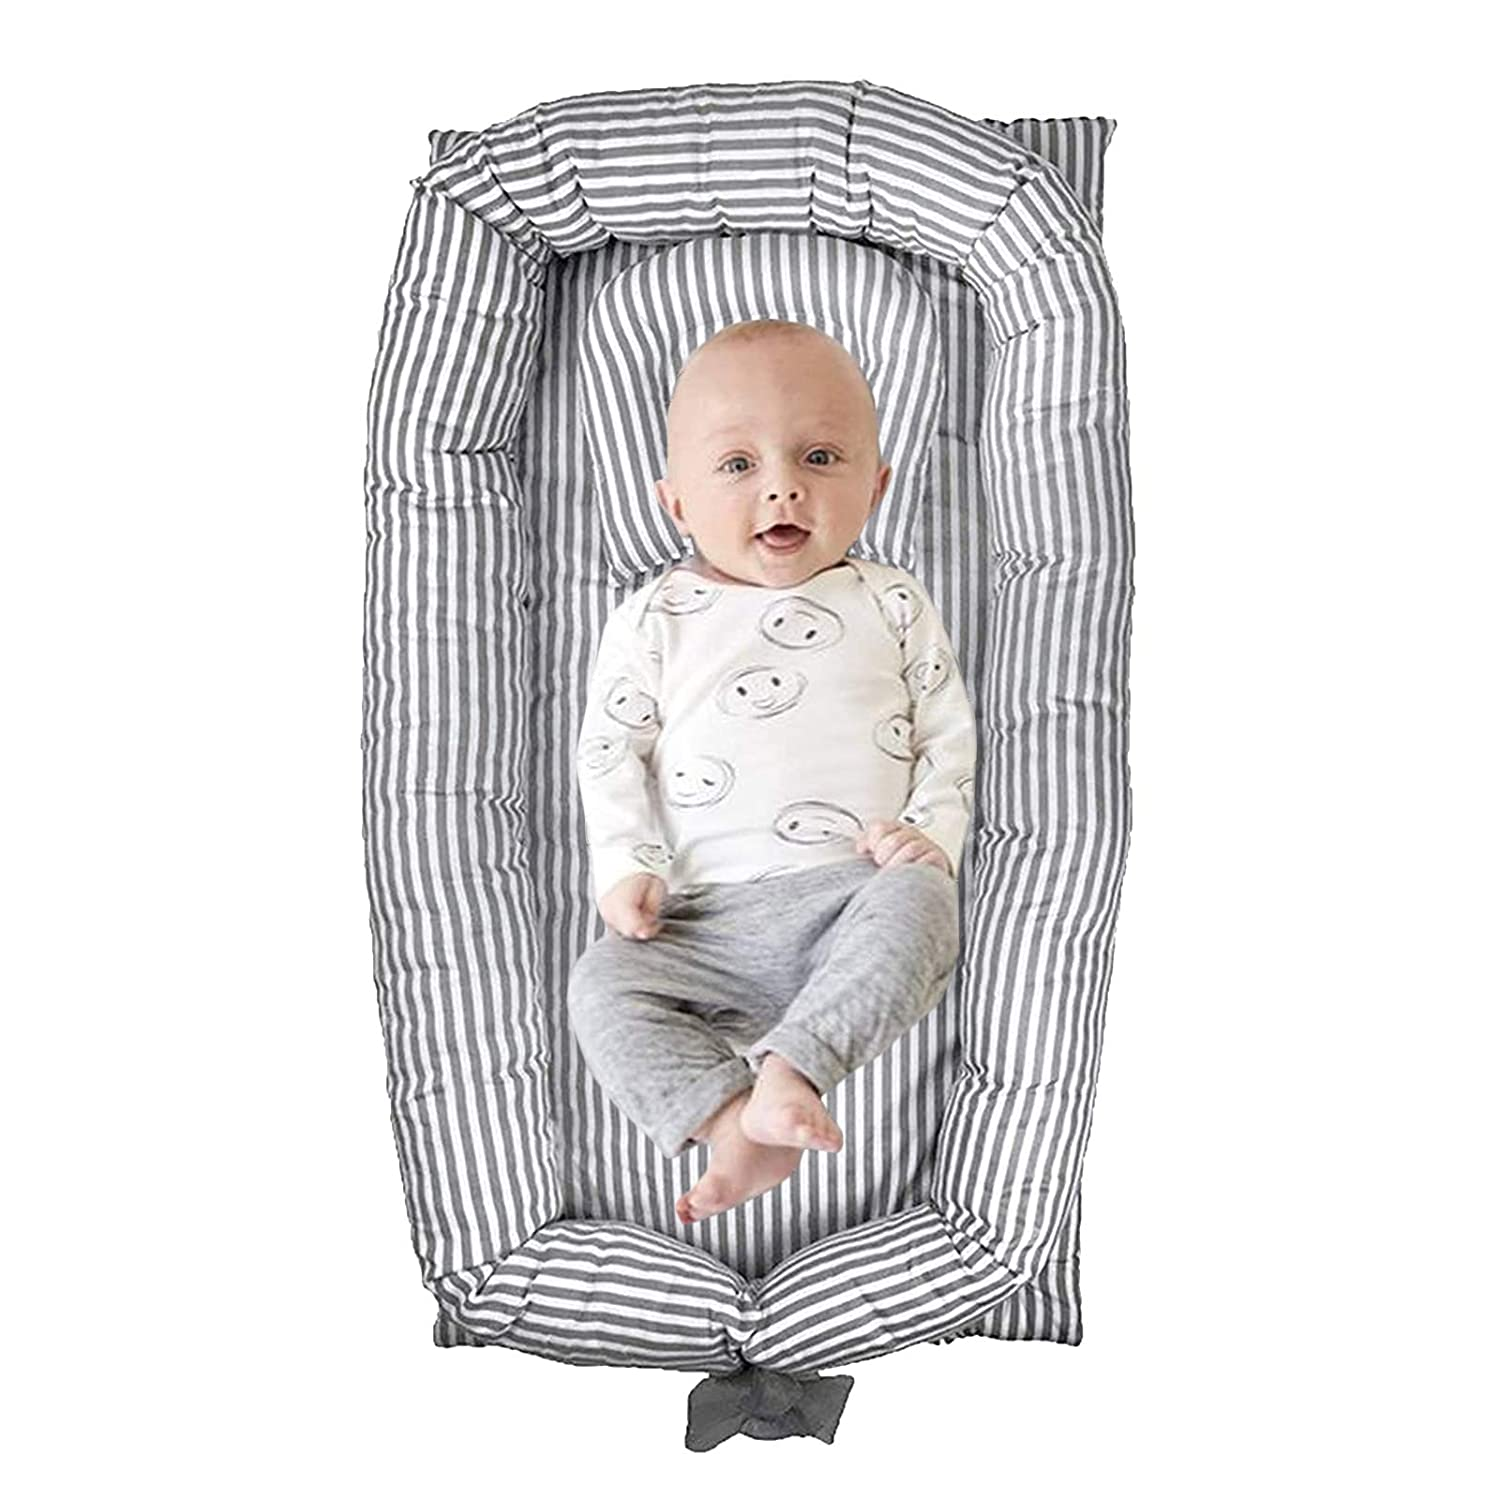 ABREEZE Baby Nest Baby Lounger Grey Striped Baby Lounger Breathable, Washable, Portable and Lightweight Perfect for Cuddling, Lounging, Co Sleeping, Napping and Travel Bassinet(0-24 Months)